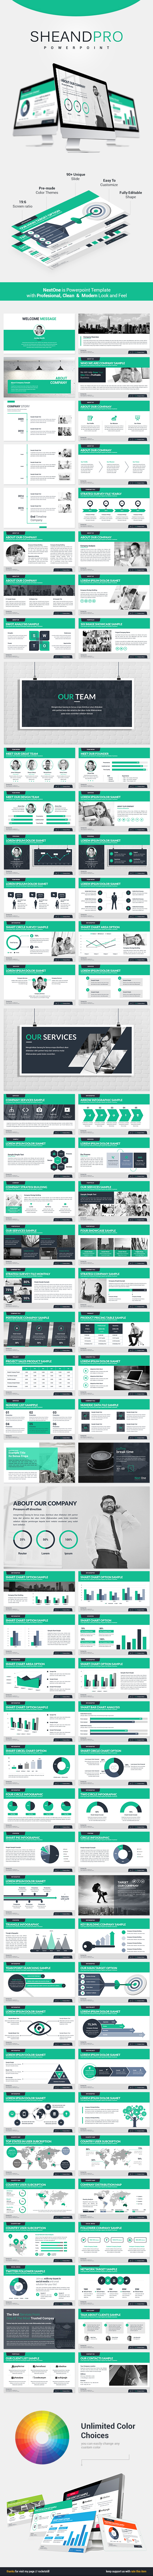 Sheandpro Powerpoint Template